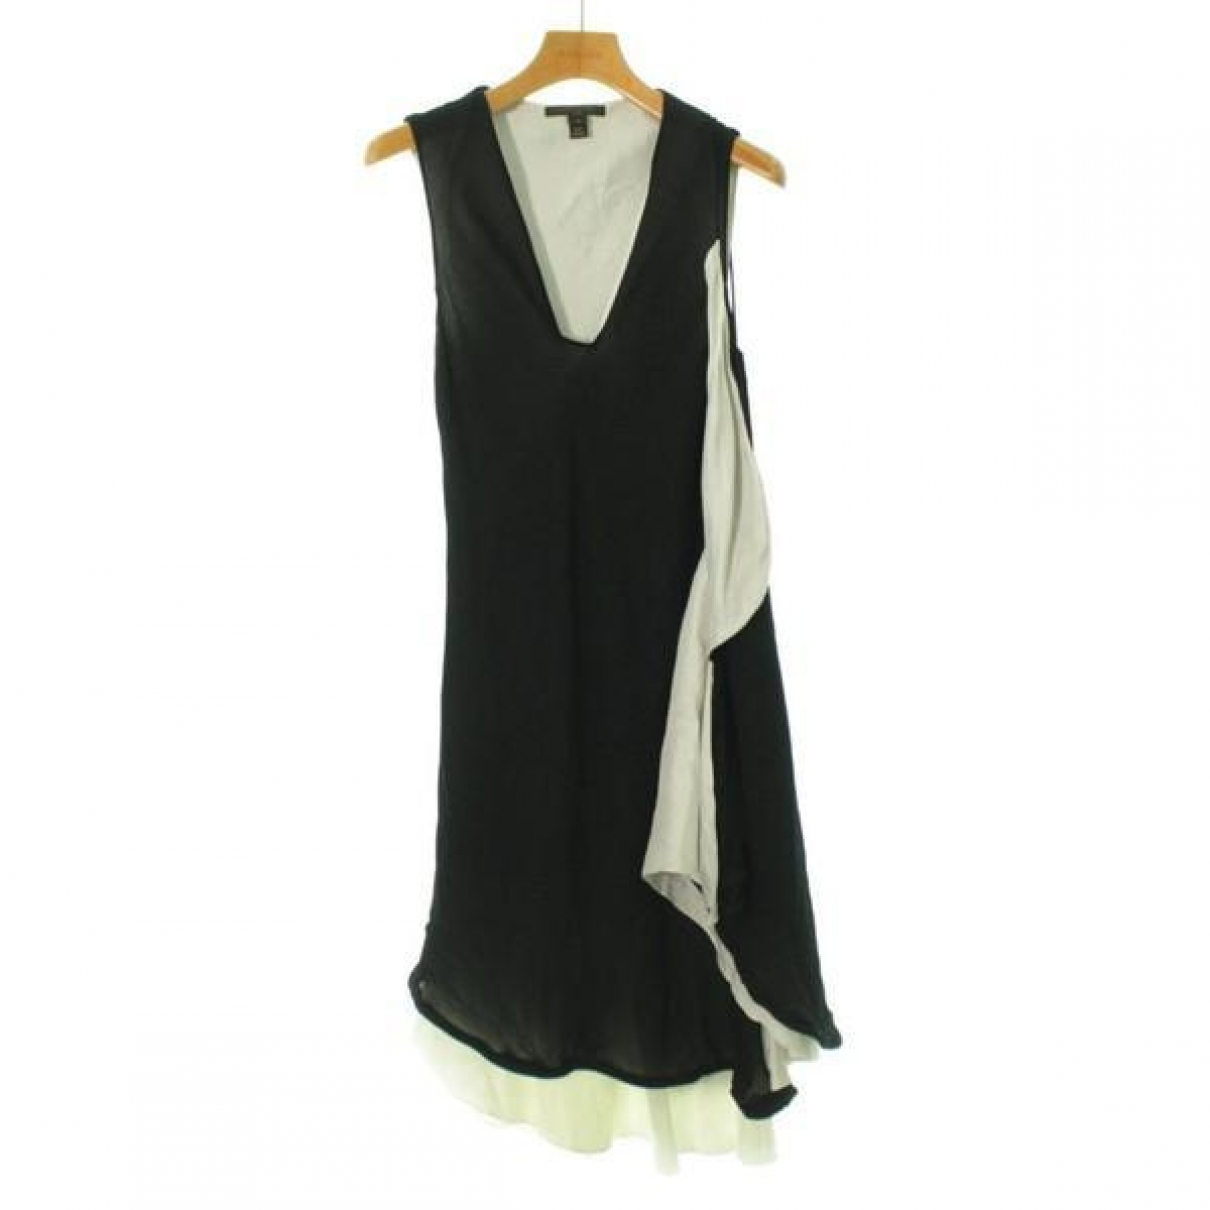 Louis Vuitton \N Black Cotton dress for Women 34 FR